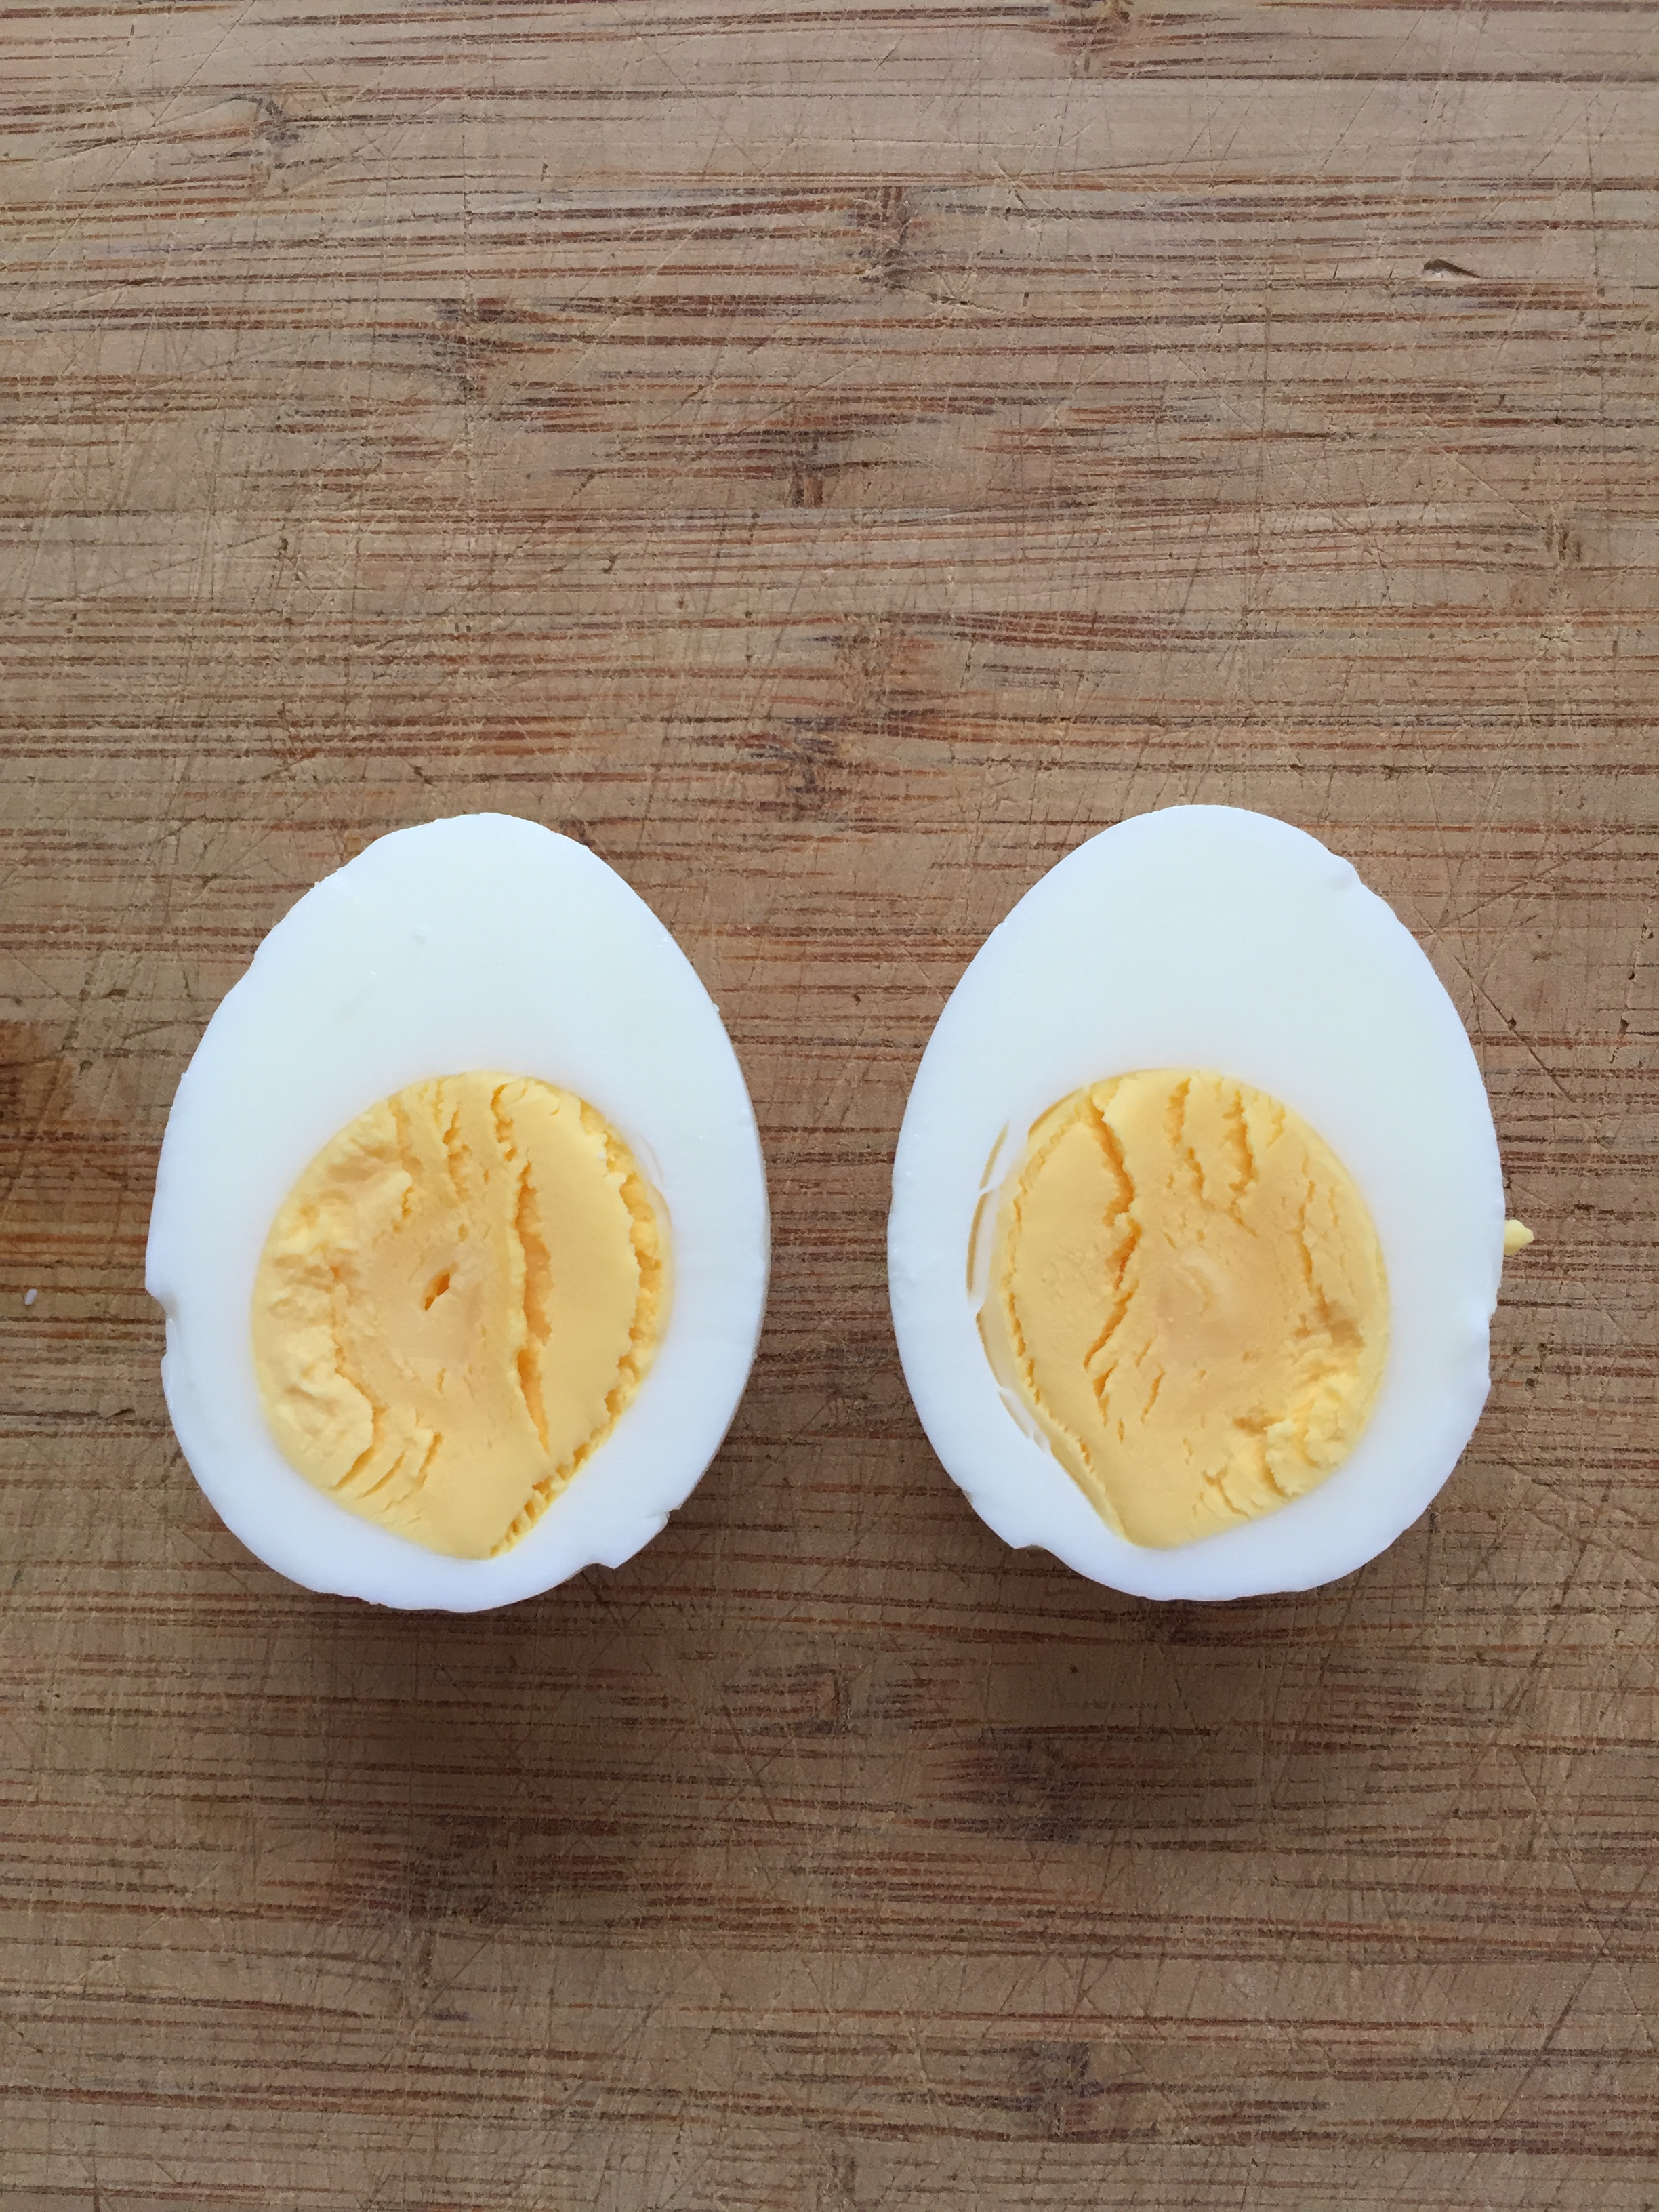 The Best Way To Hard Boil An Egg Is Not To Boil It, But To